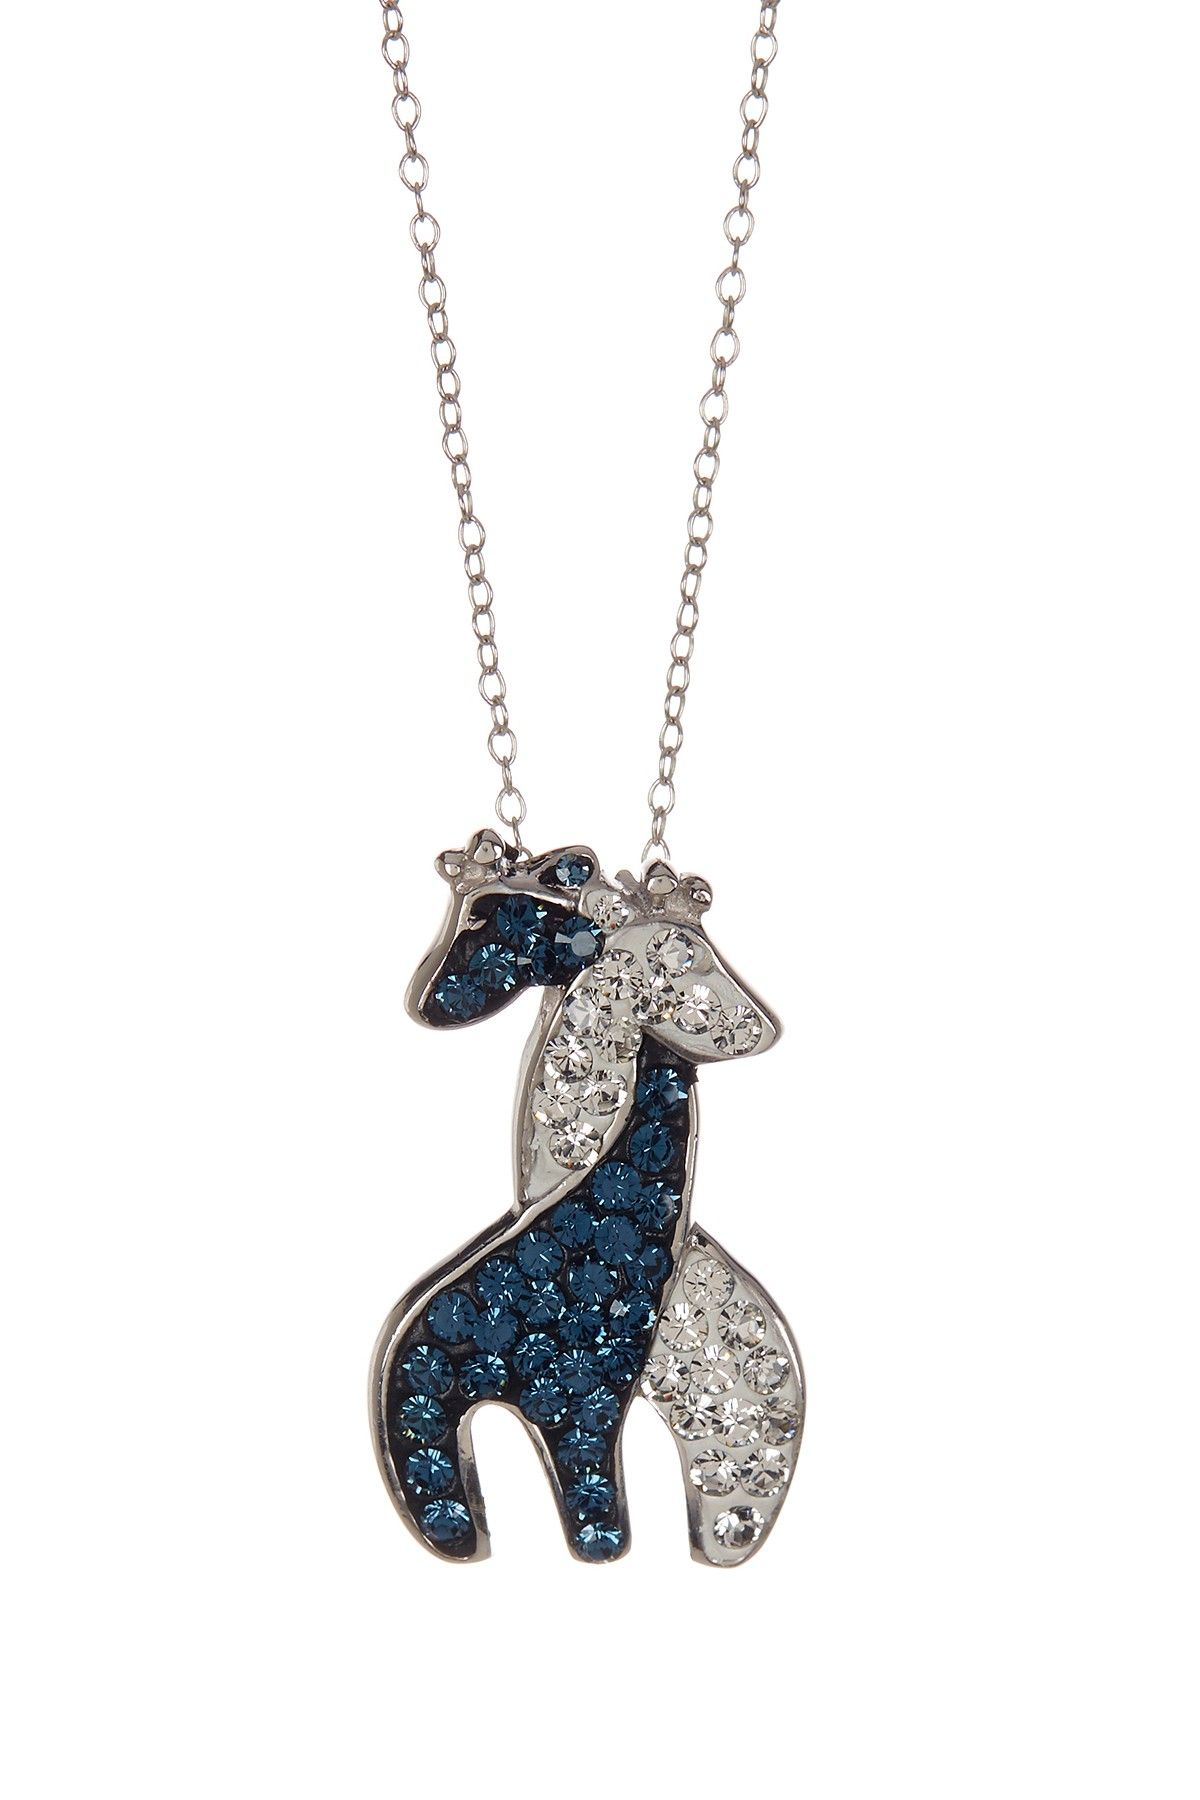 exclusivity sterling sterli by silver giraffe pendant product mini